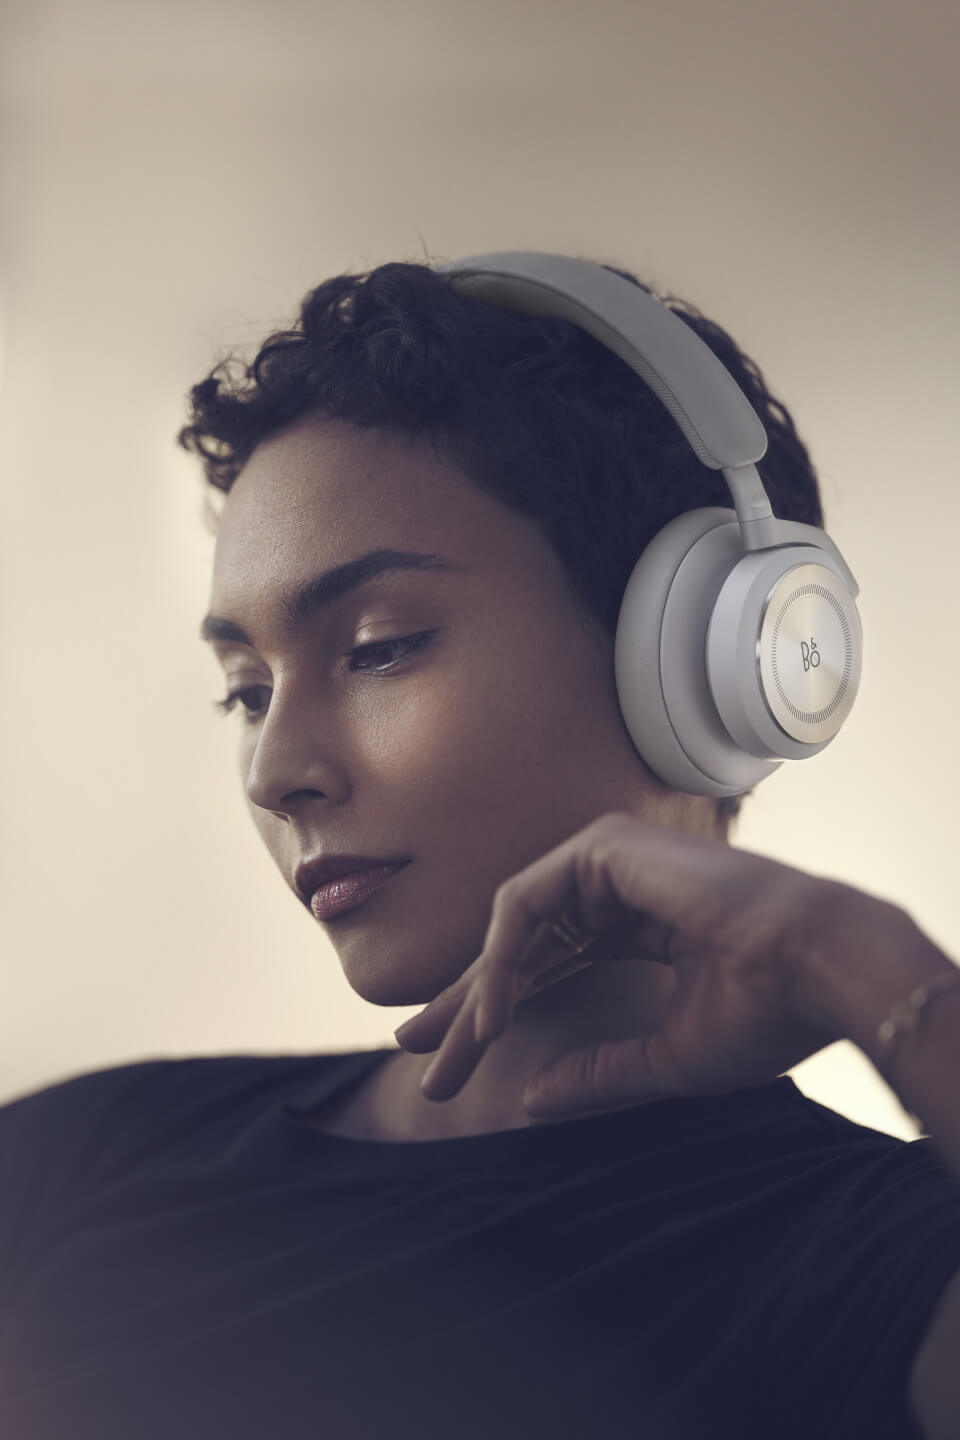 Beoplay H10 Sand